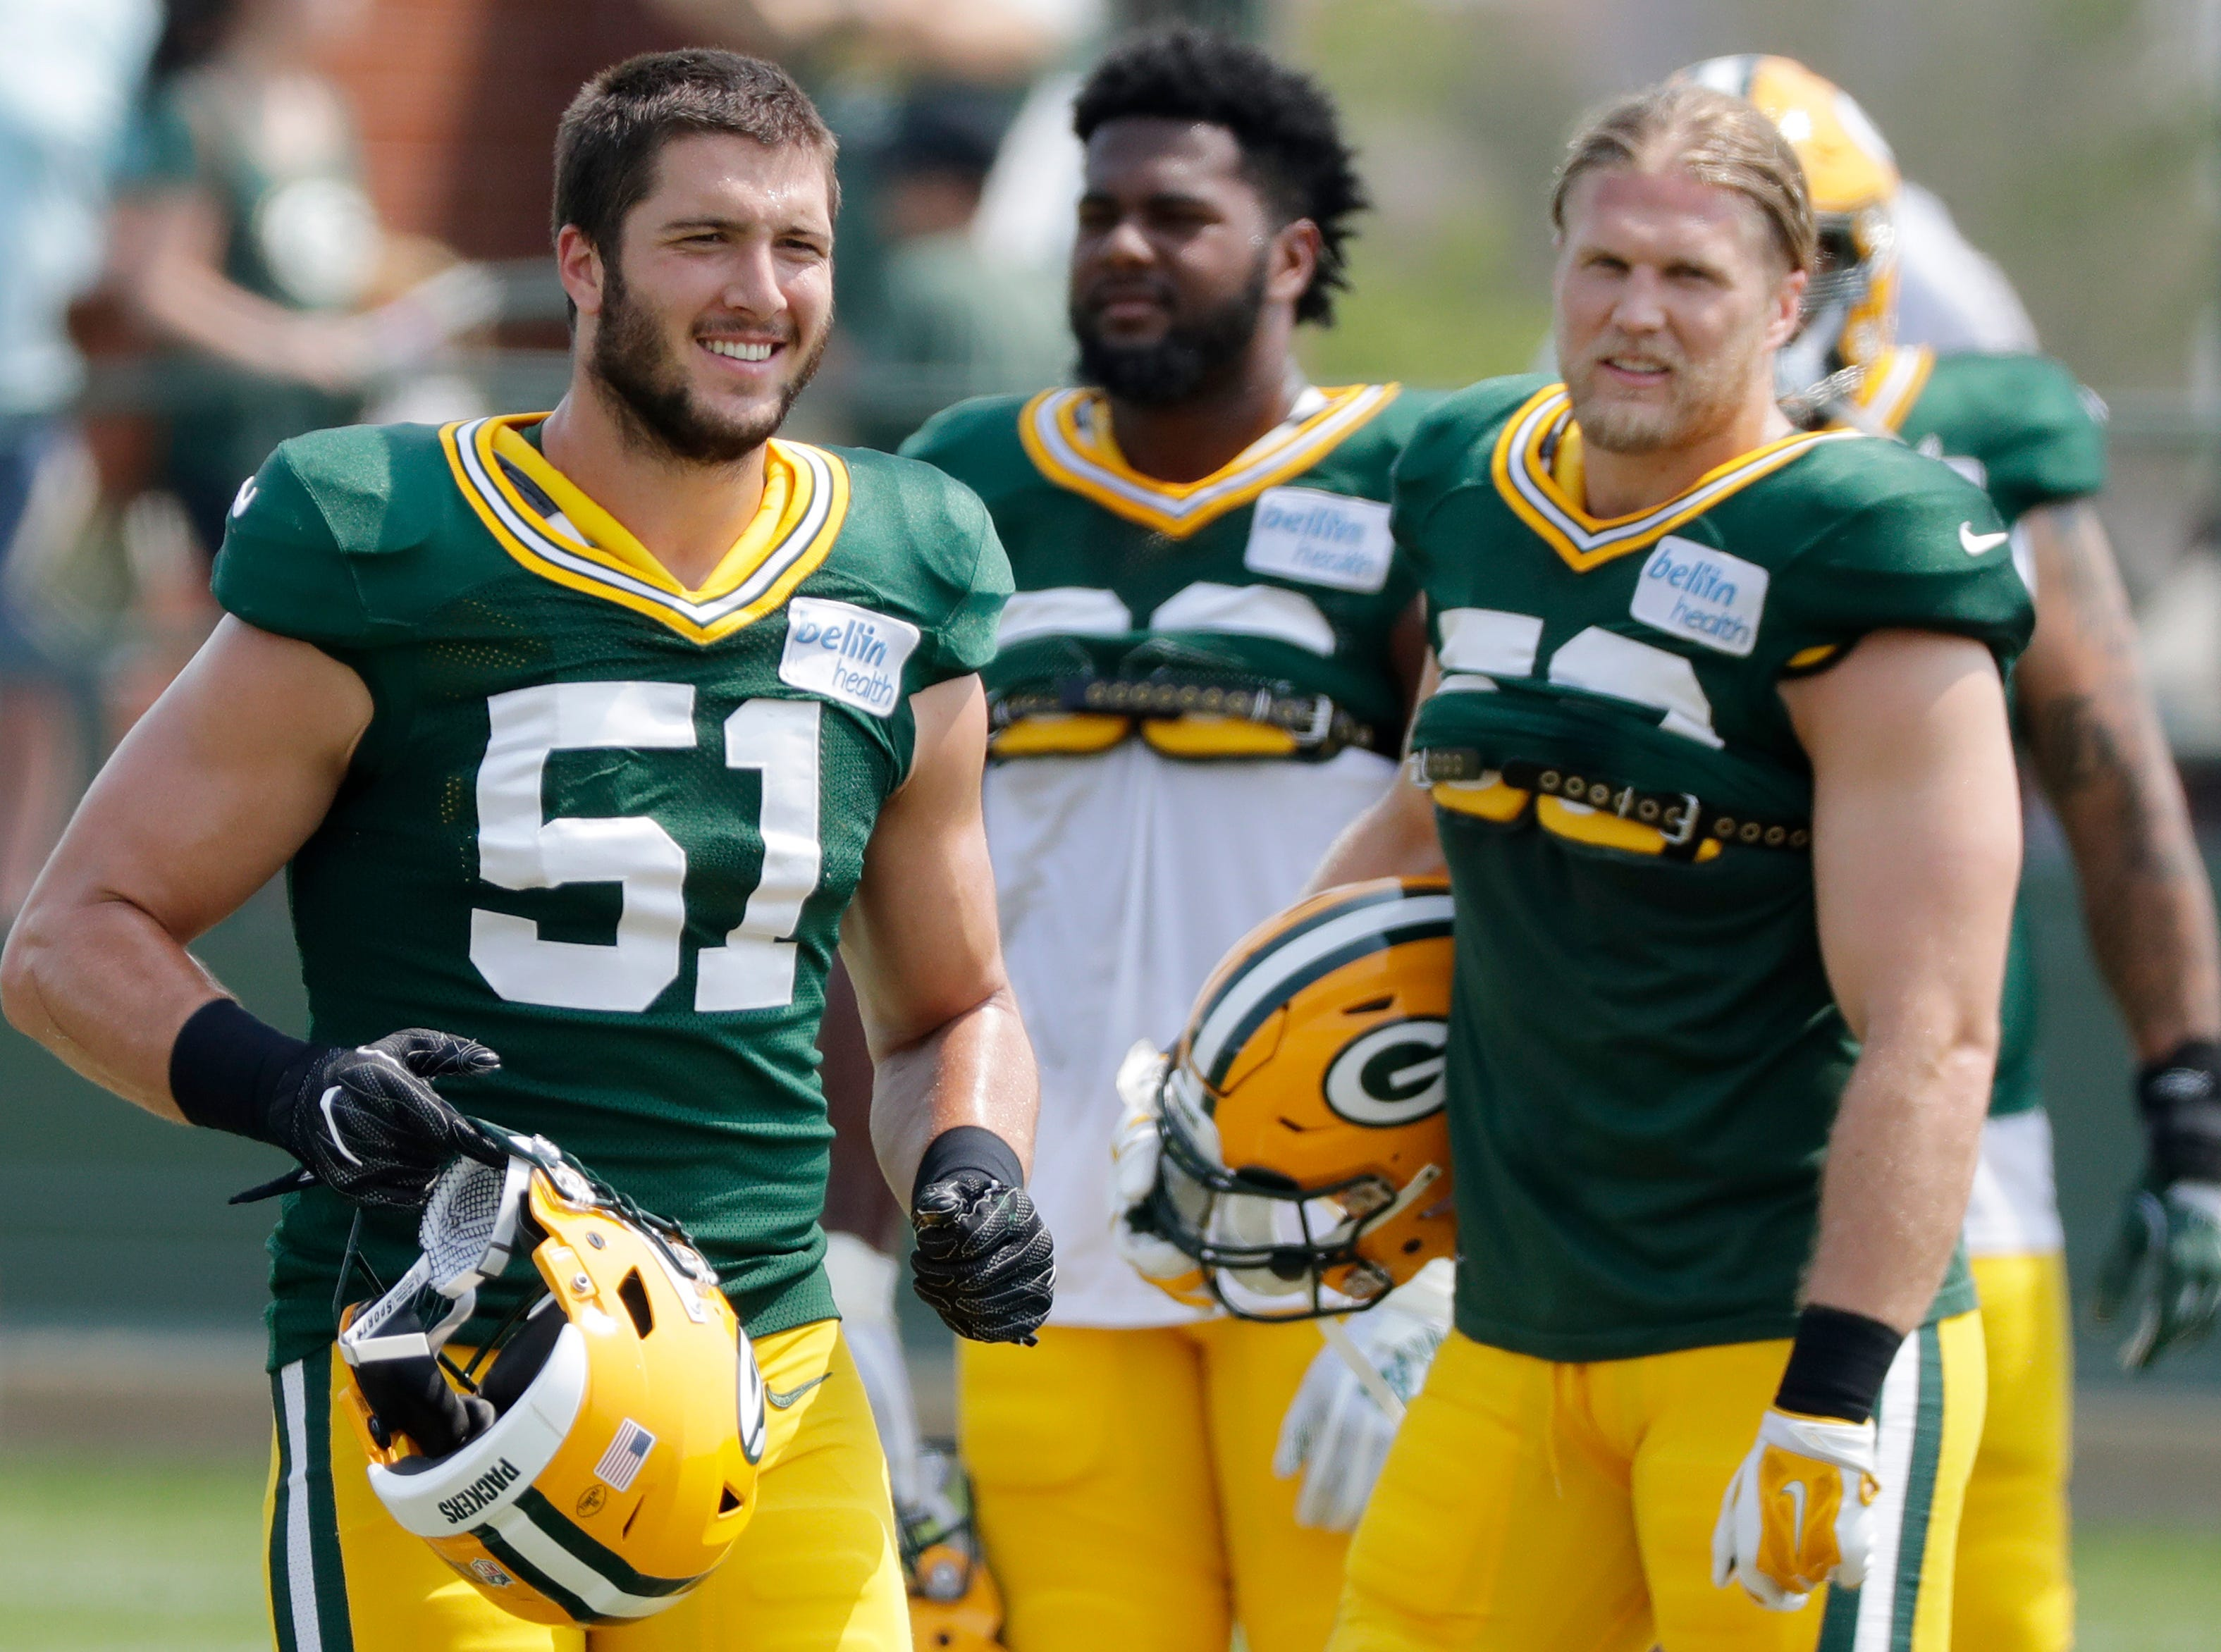 Green Bay Packers linebacker Kyler Fackrell (51) during training camp practice at Ray Nitschke Field on Sunday, August 12, 2018 in Ashwaubenon, Wis. 